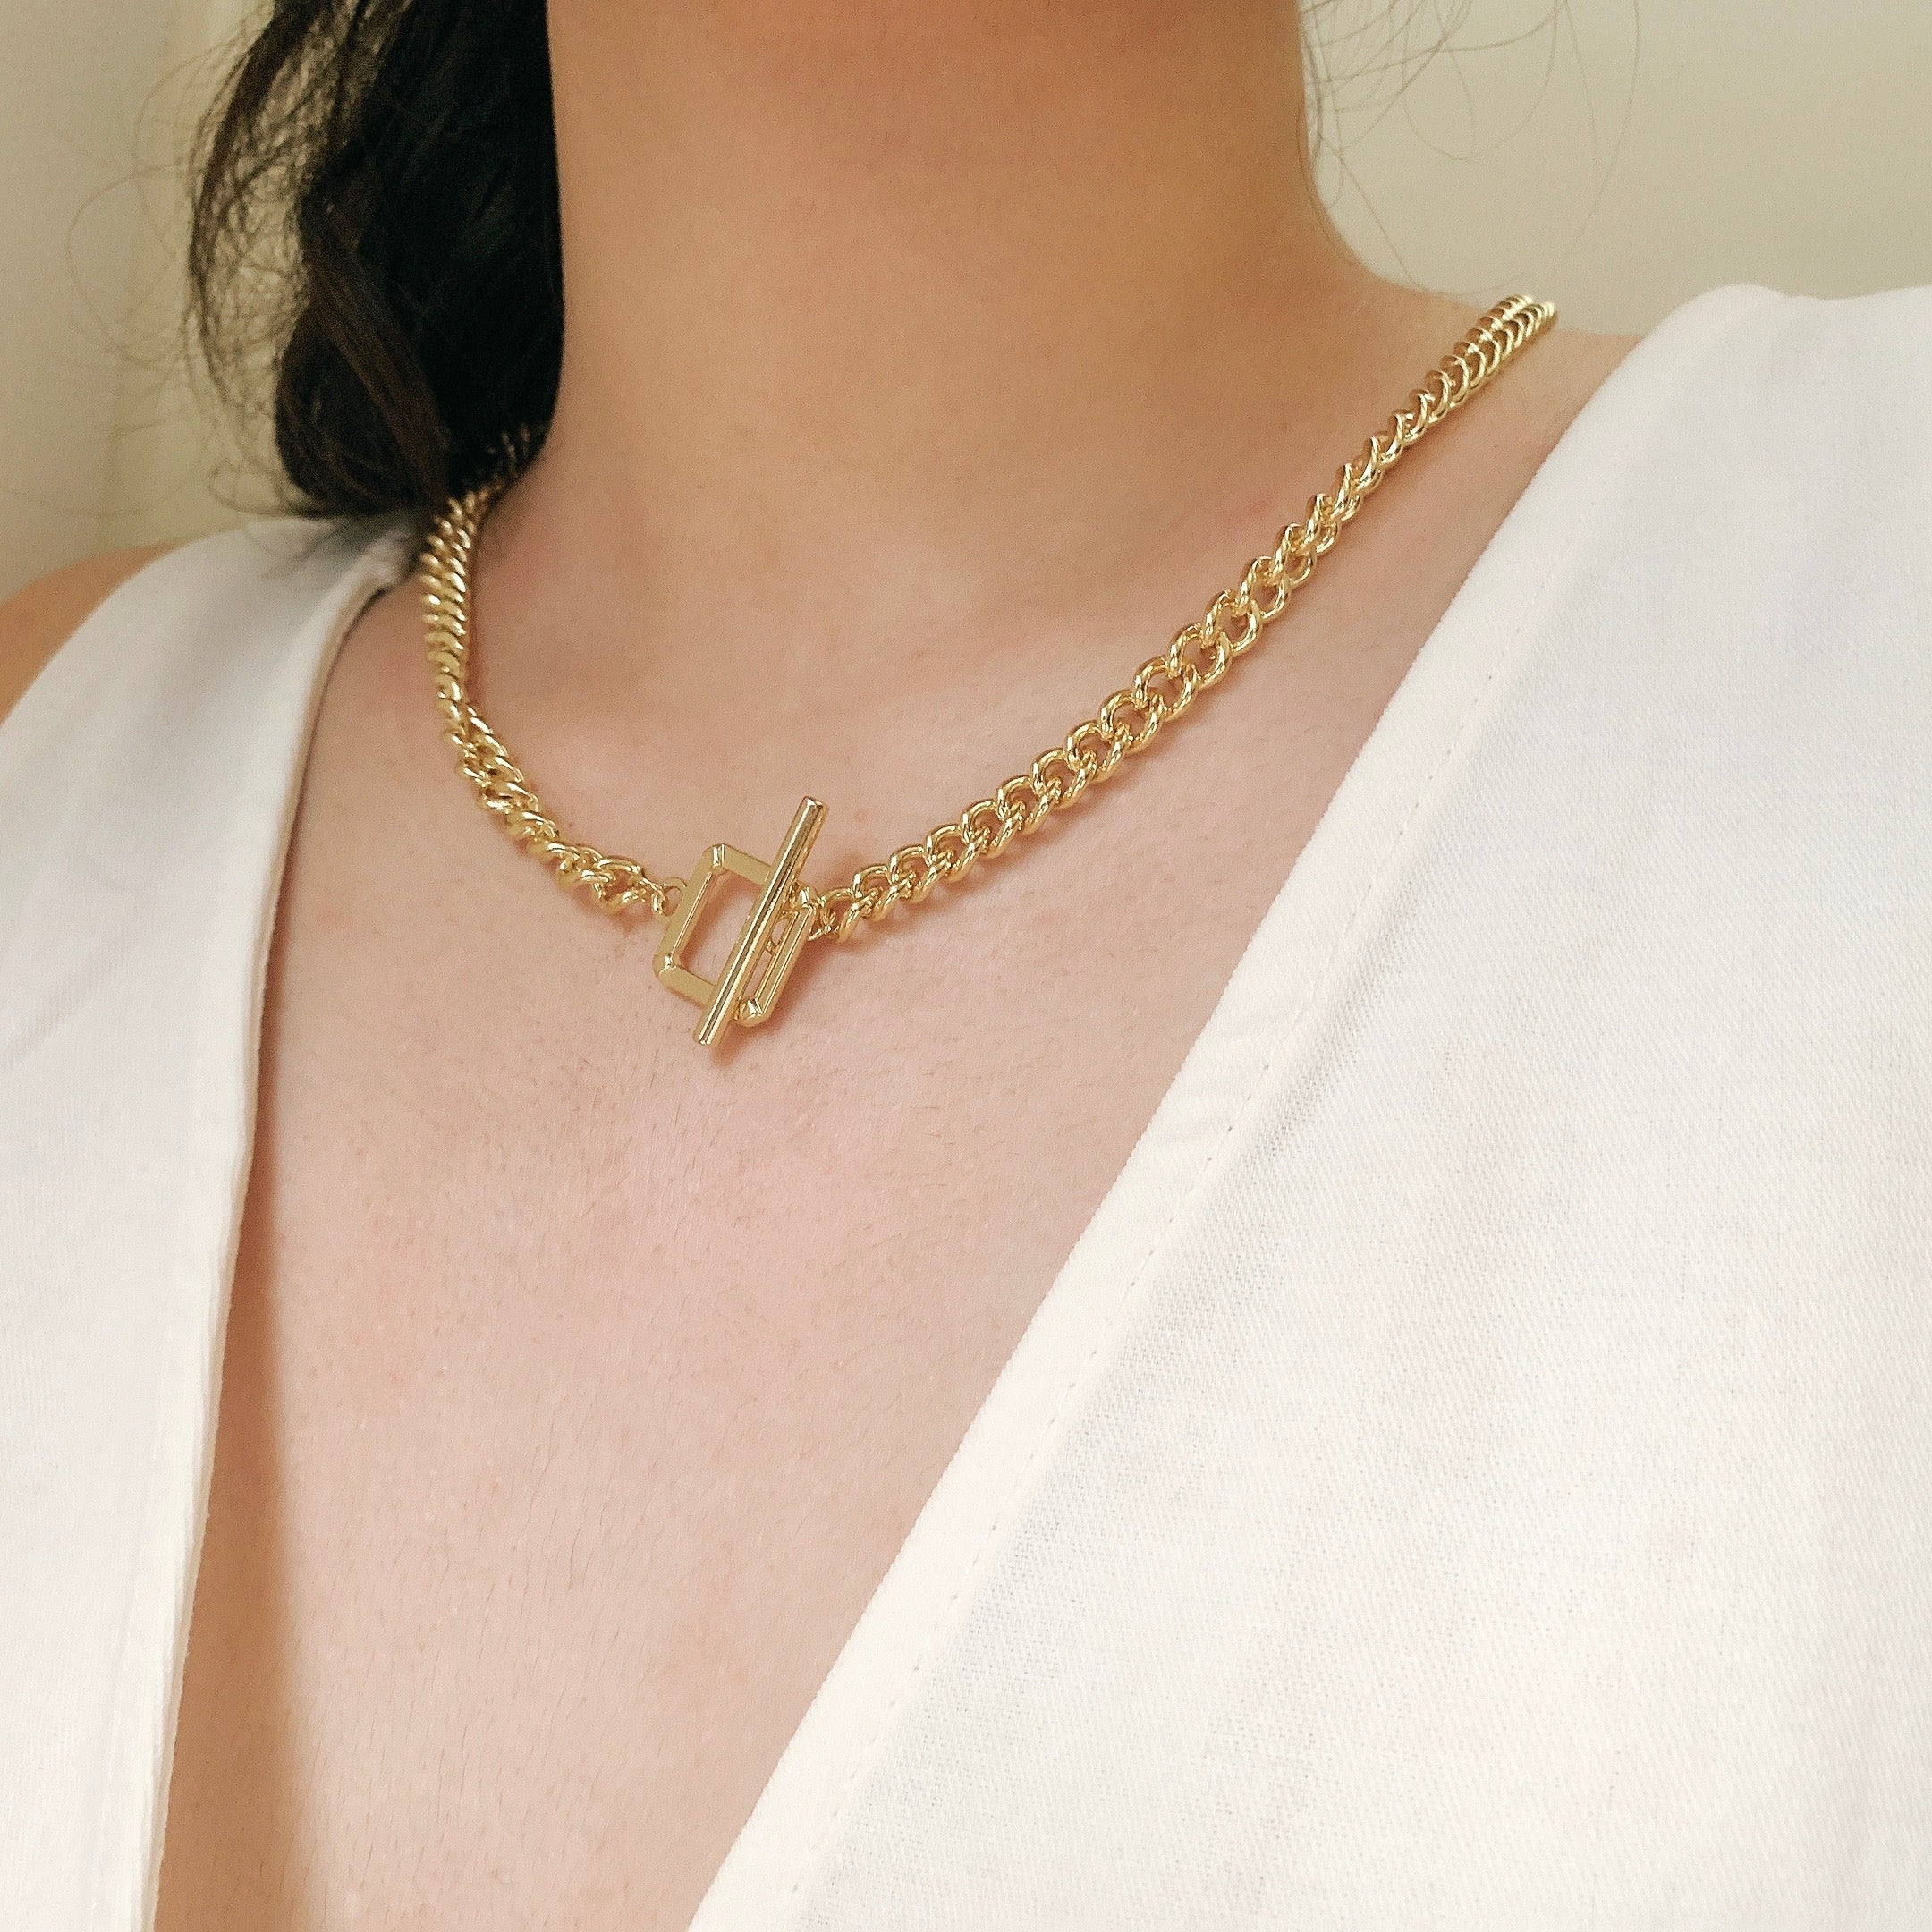 Jela Necklace